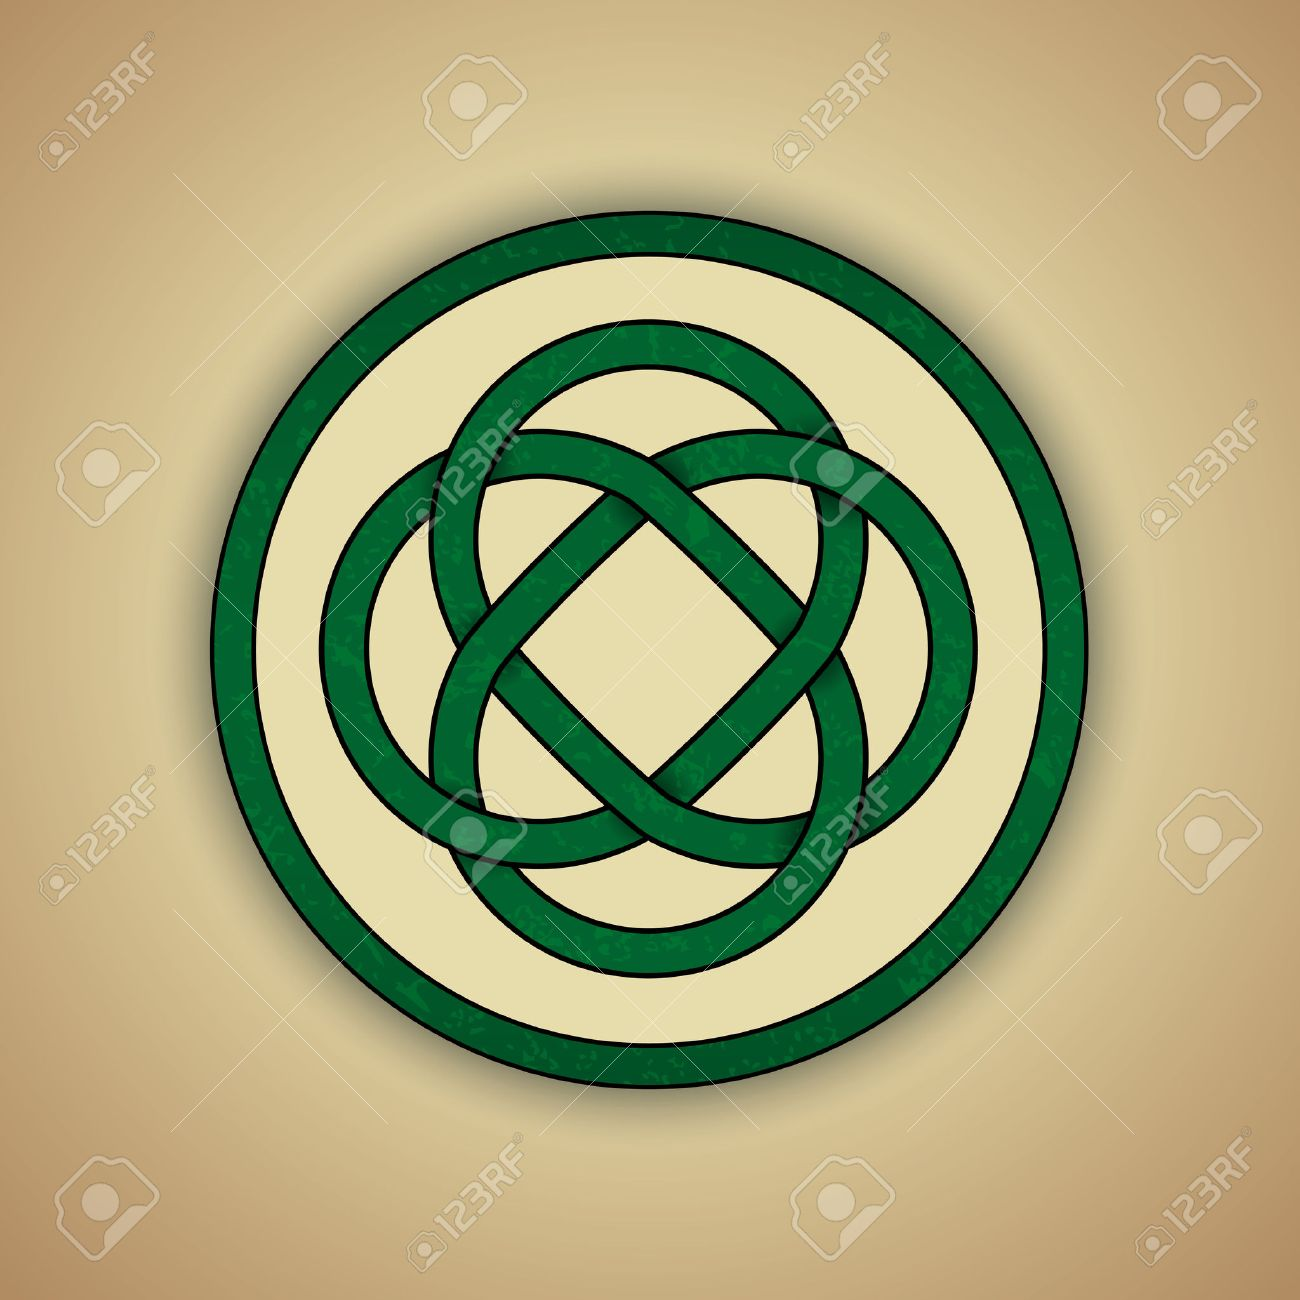 Celtic lovers knot symbol of eternal love royalty free cliparts celtic lovers knot symbol of eternal love stock vector 29437235 biocorpaavc Gallery